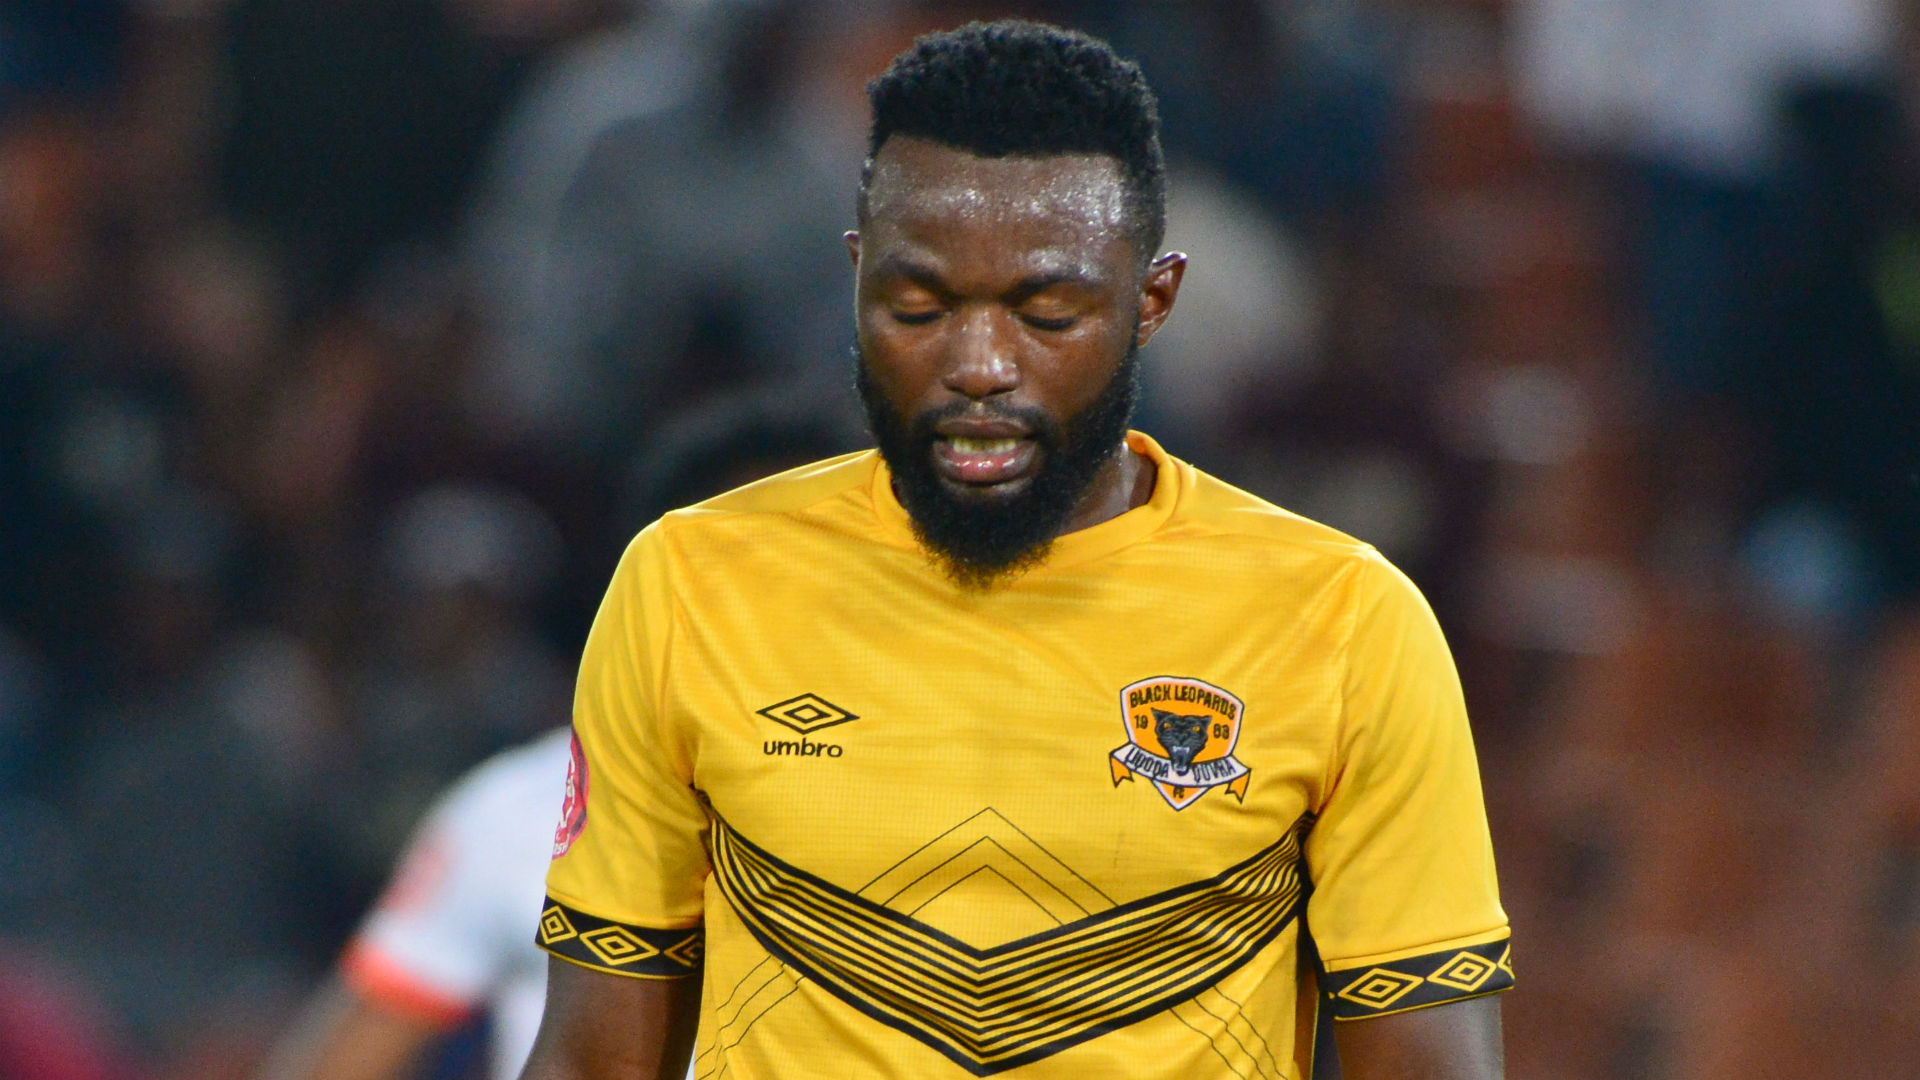 Black Leopards star Mwape Musonda going overseas - David Thidiela